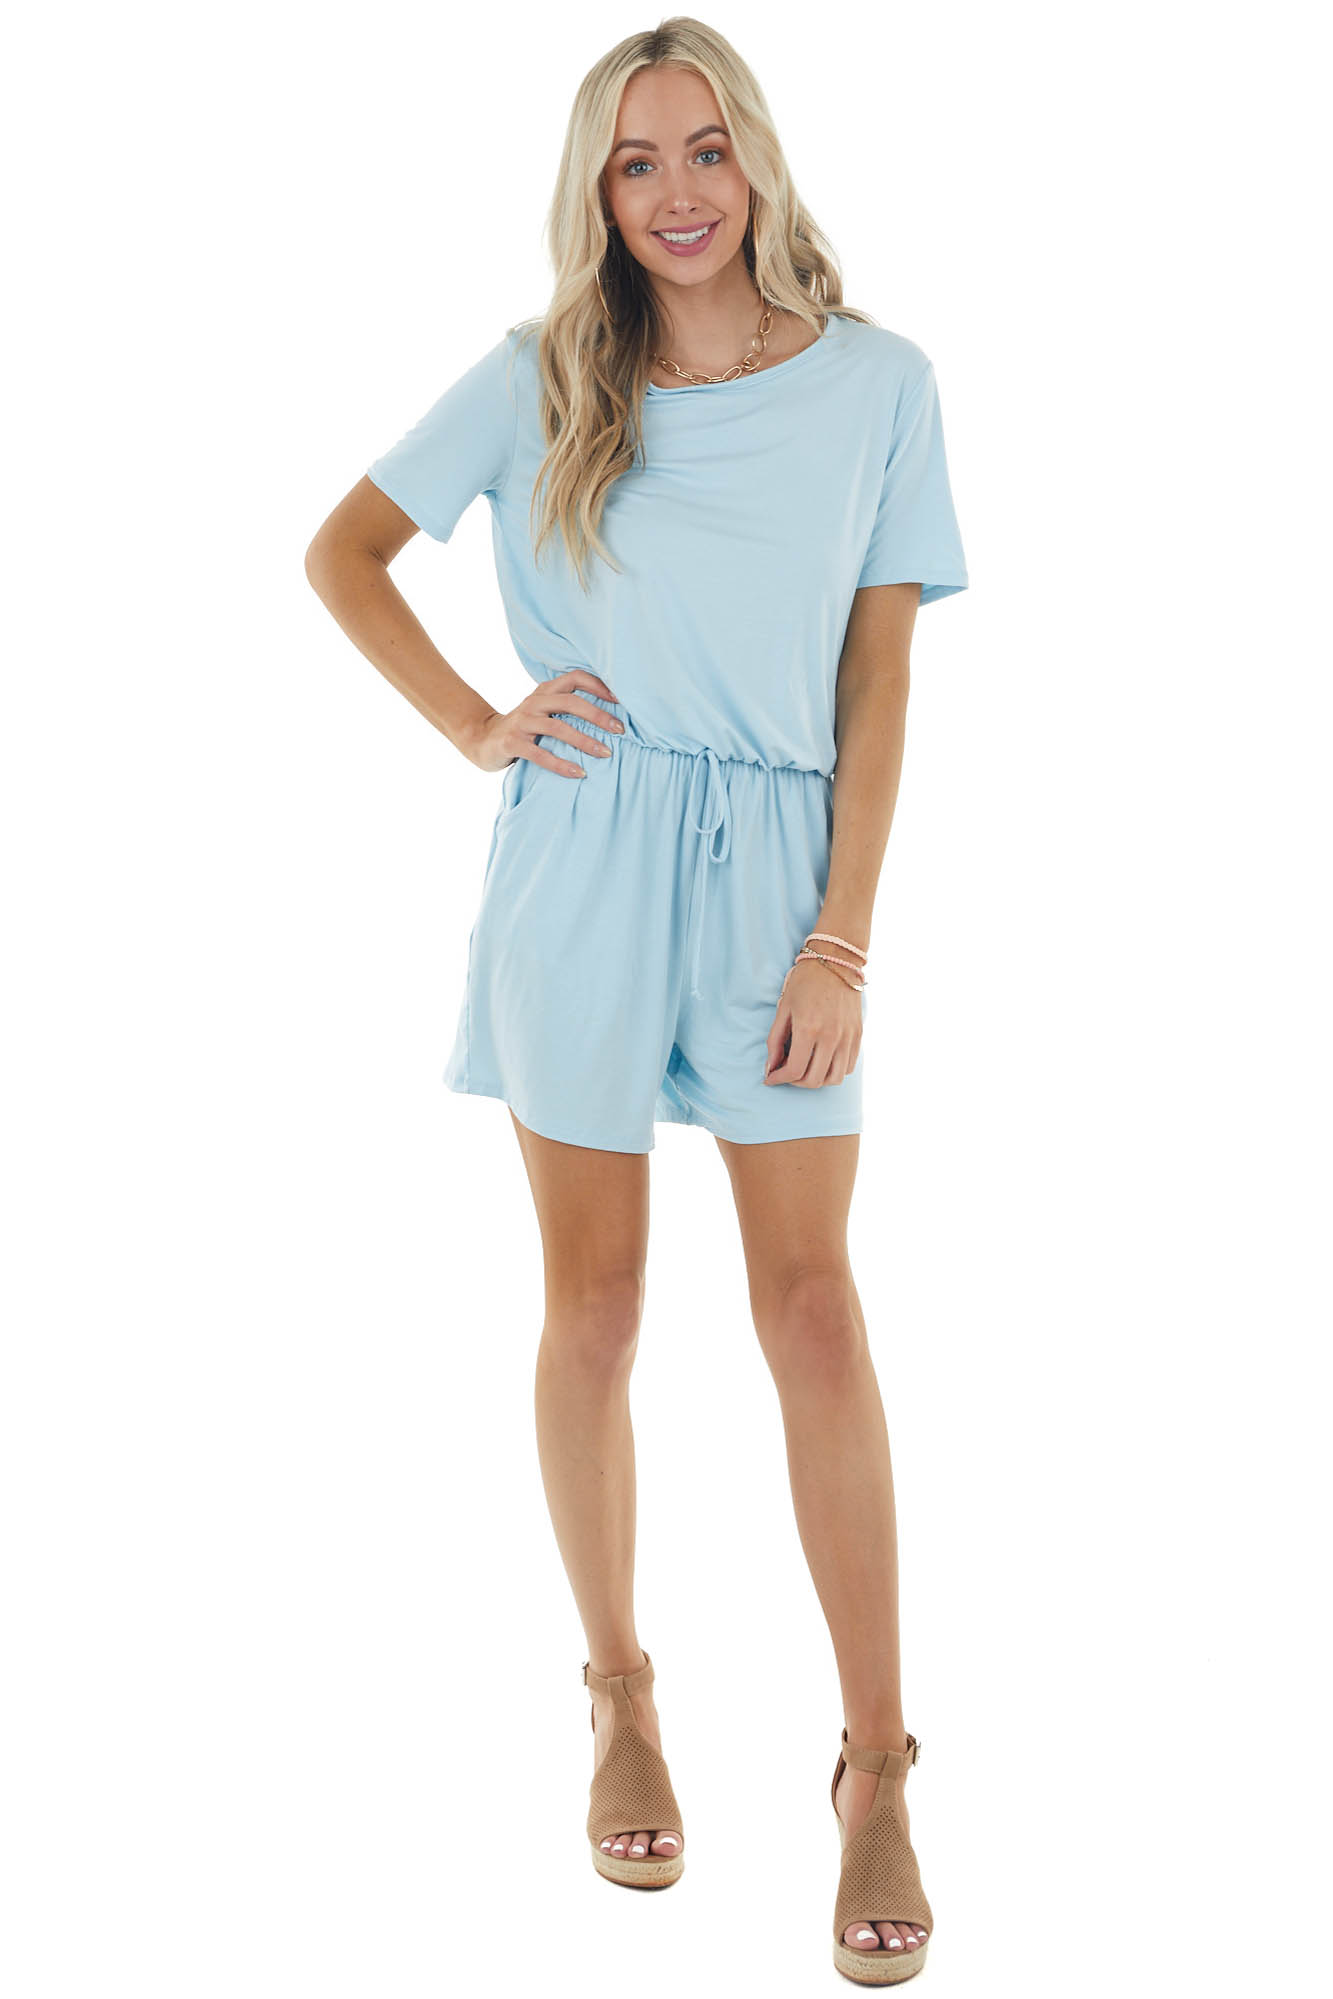 Baby Blue Short Sleeve Knit Romper with Elastic Waistband